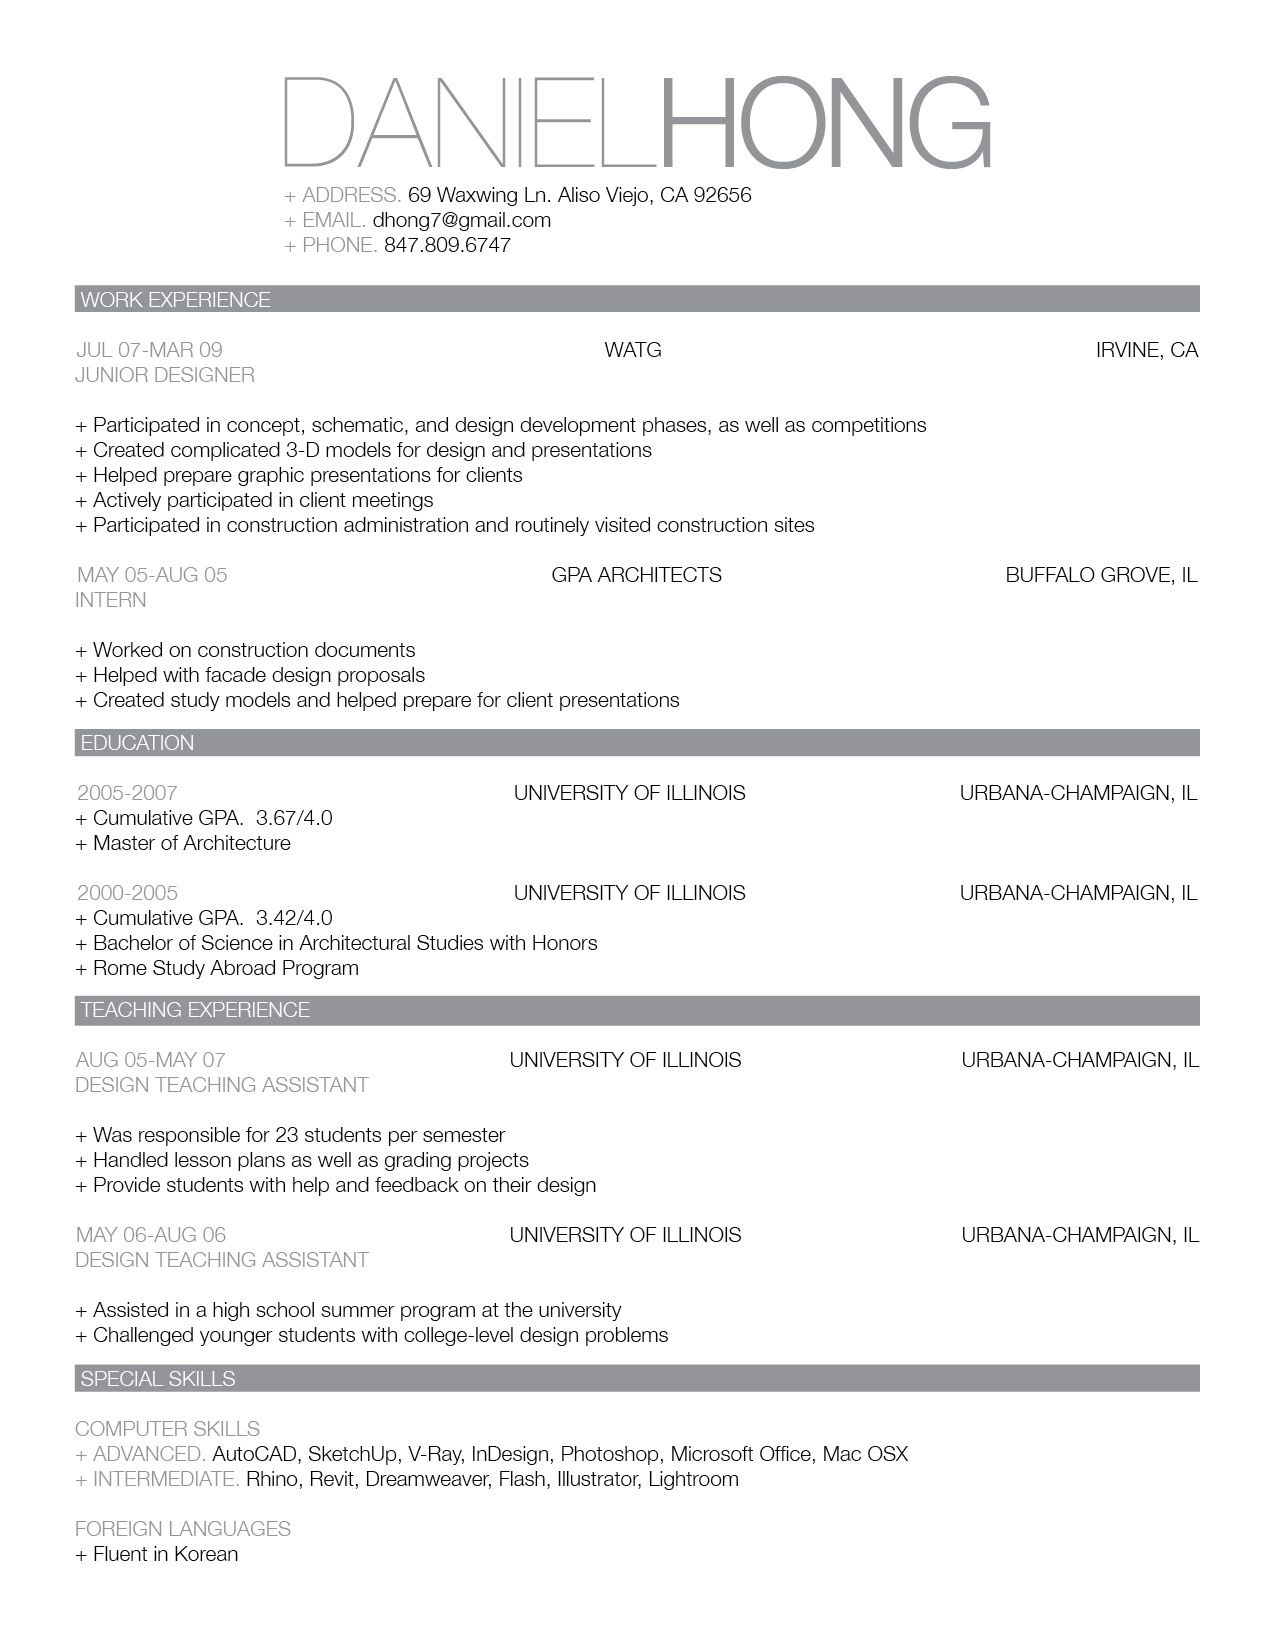 Free Job Resume Template Updated Cv And Work Sample  Professional Resume Sample Resume